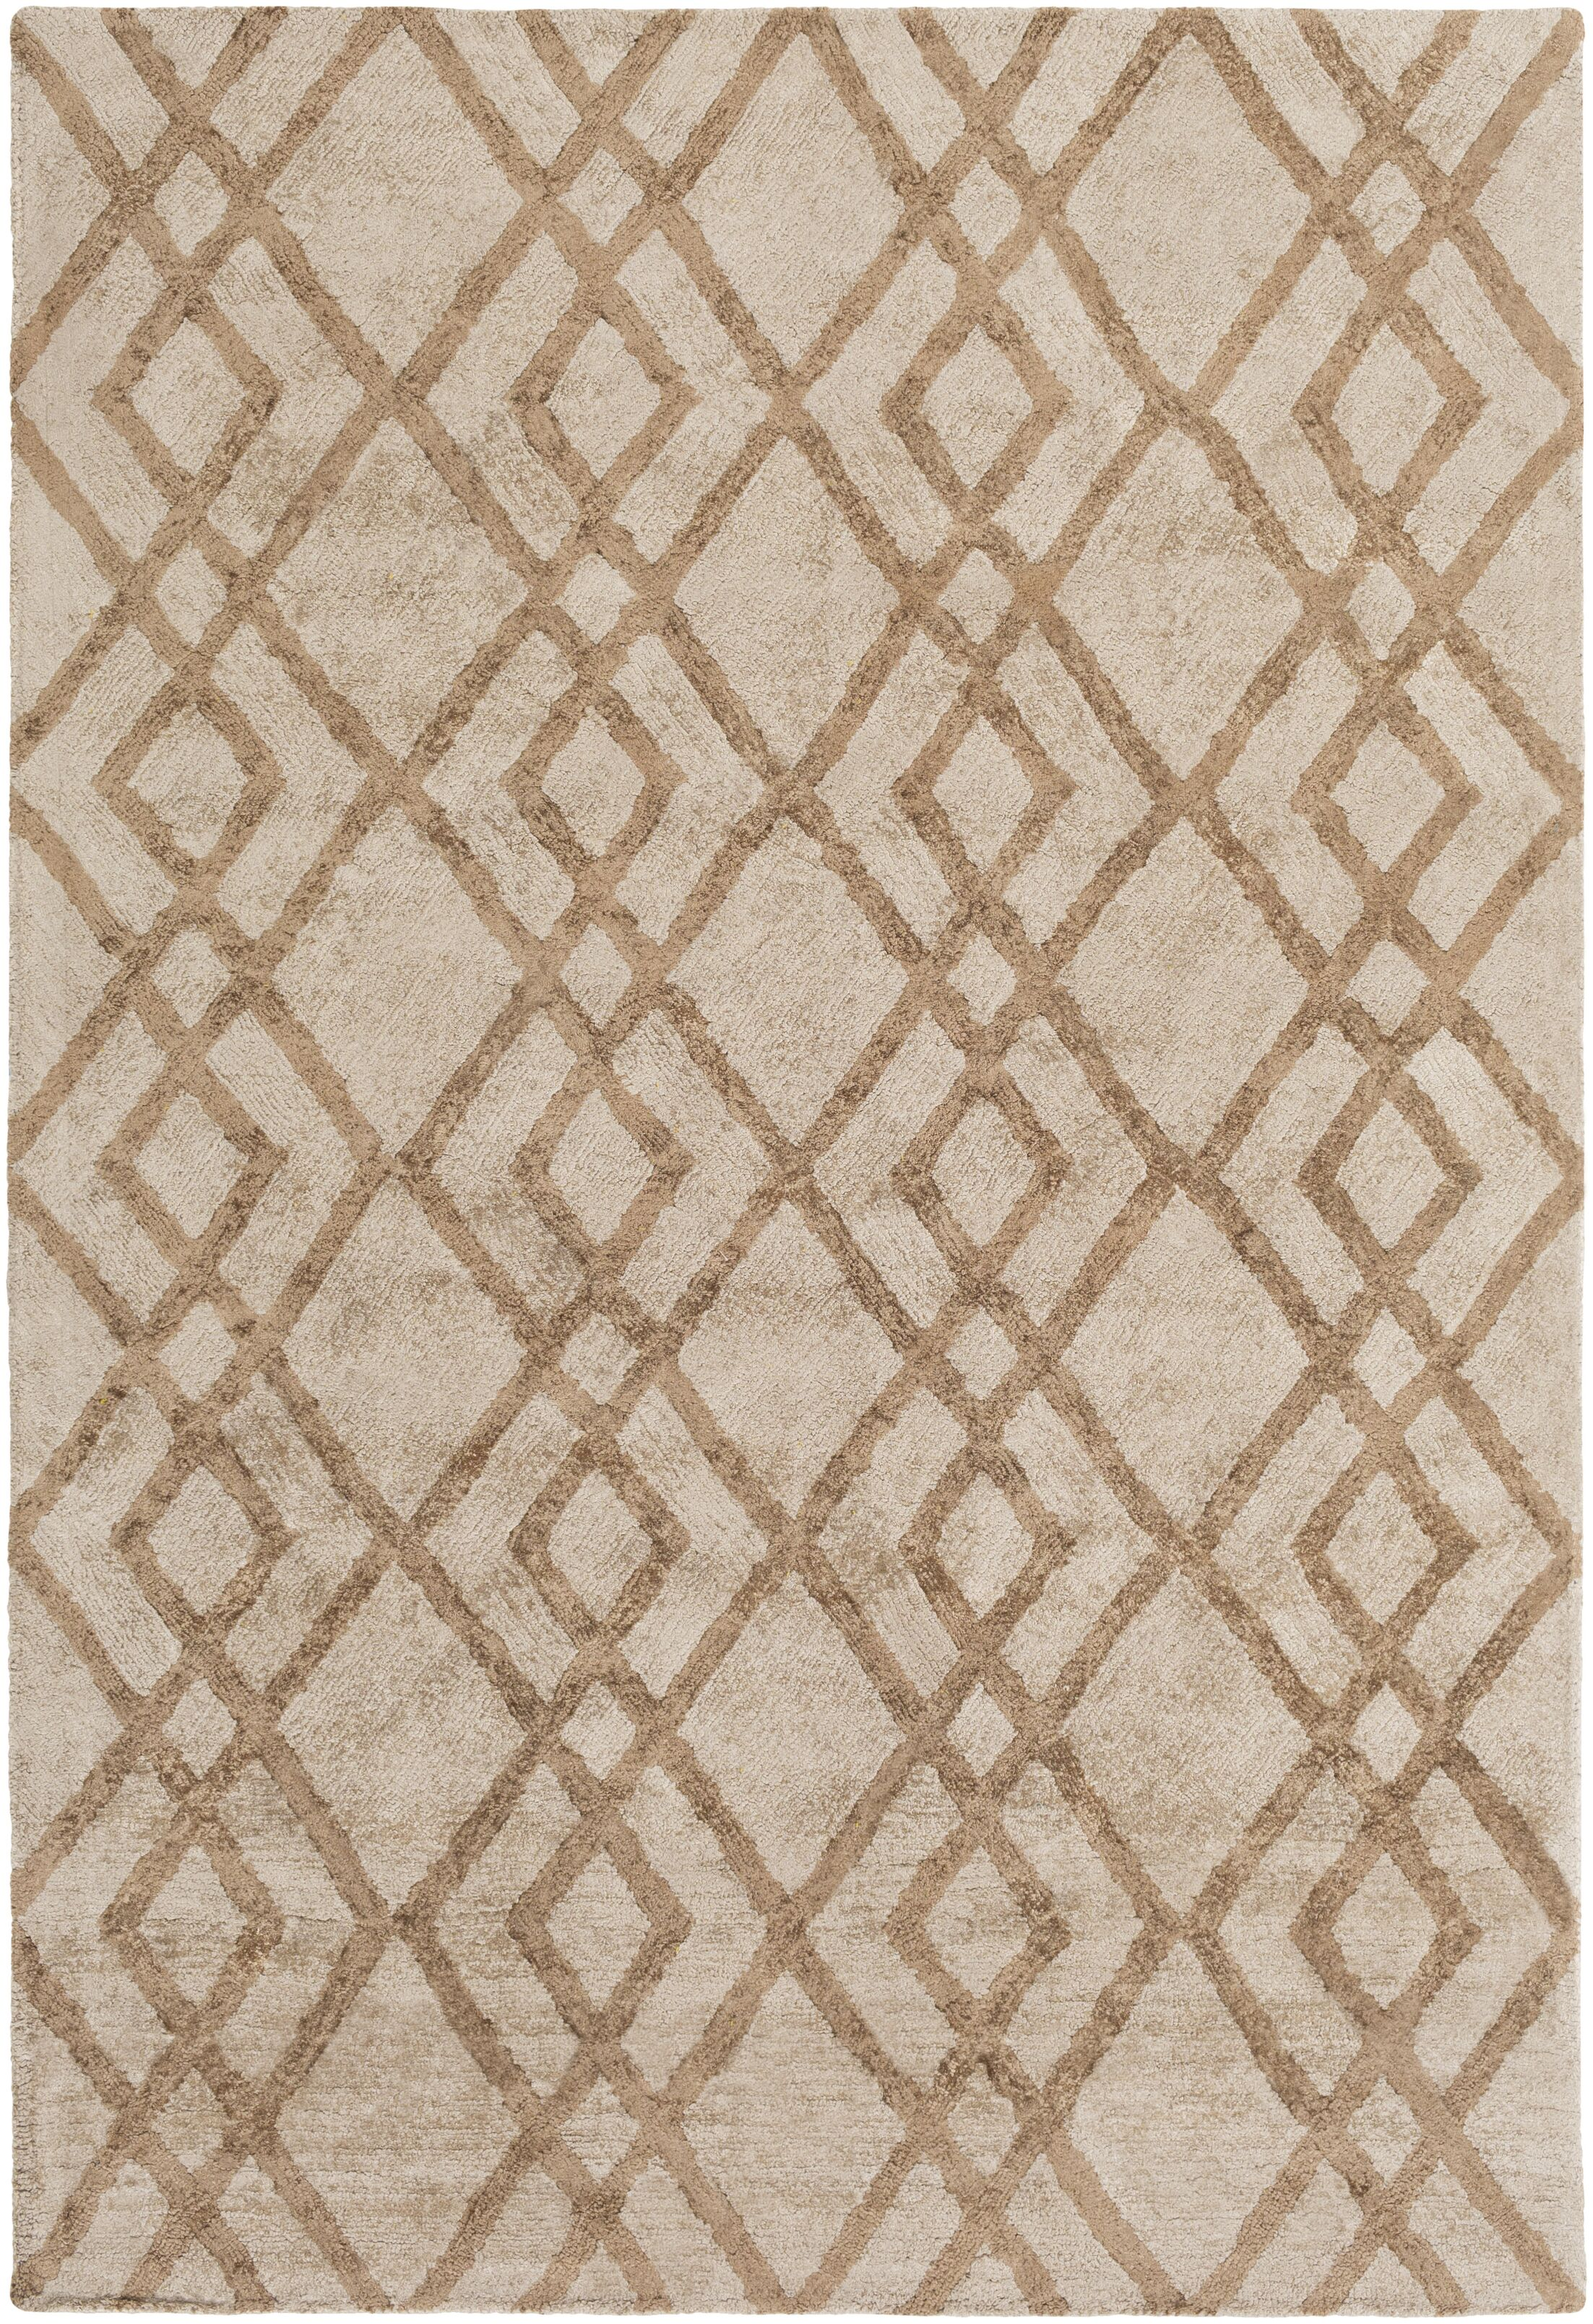 Bradt Hand-Tufted Beige Area Rug Rug Size: Rectangle 5' x 7'6